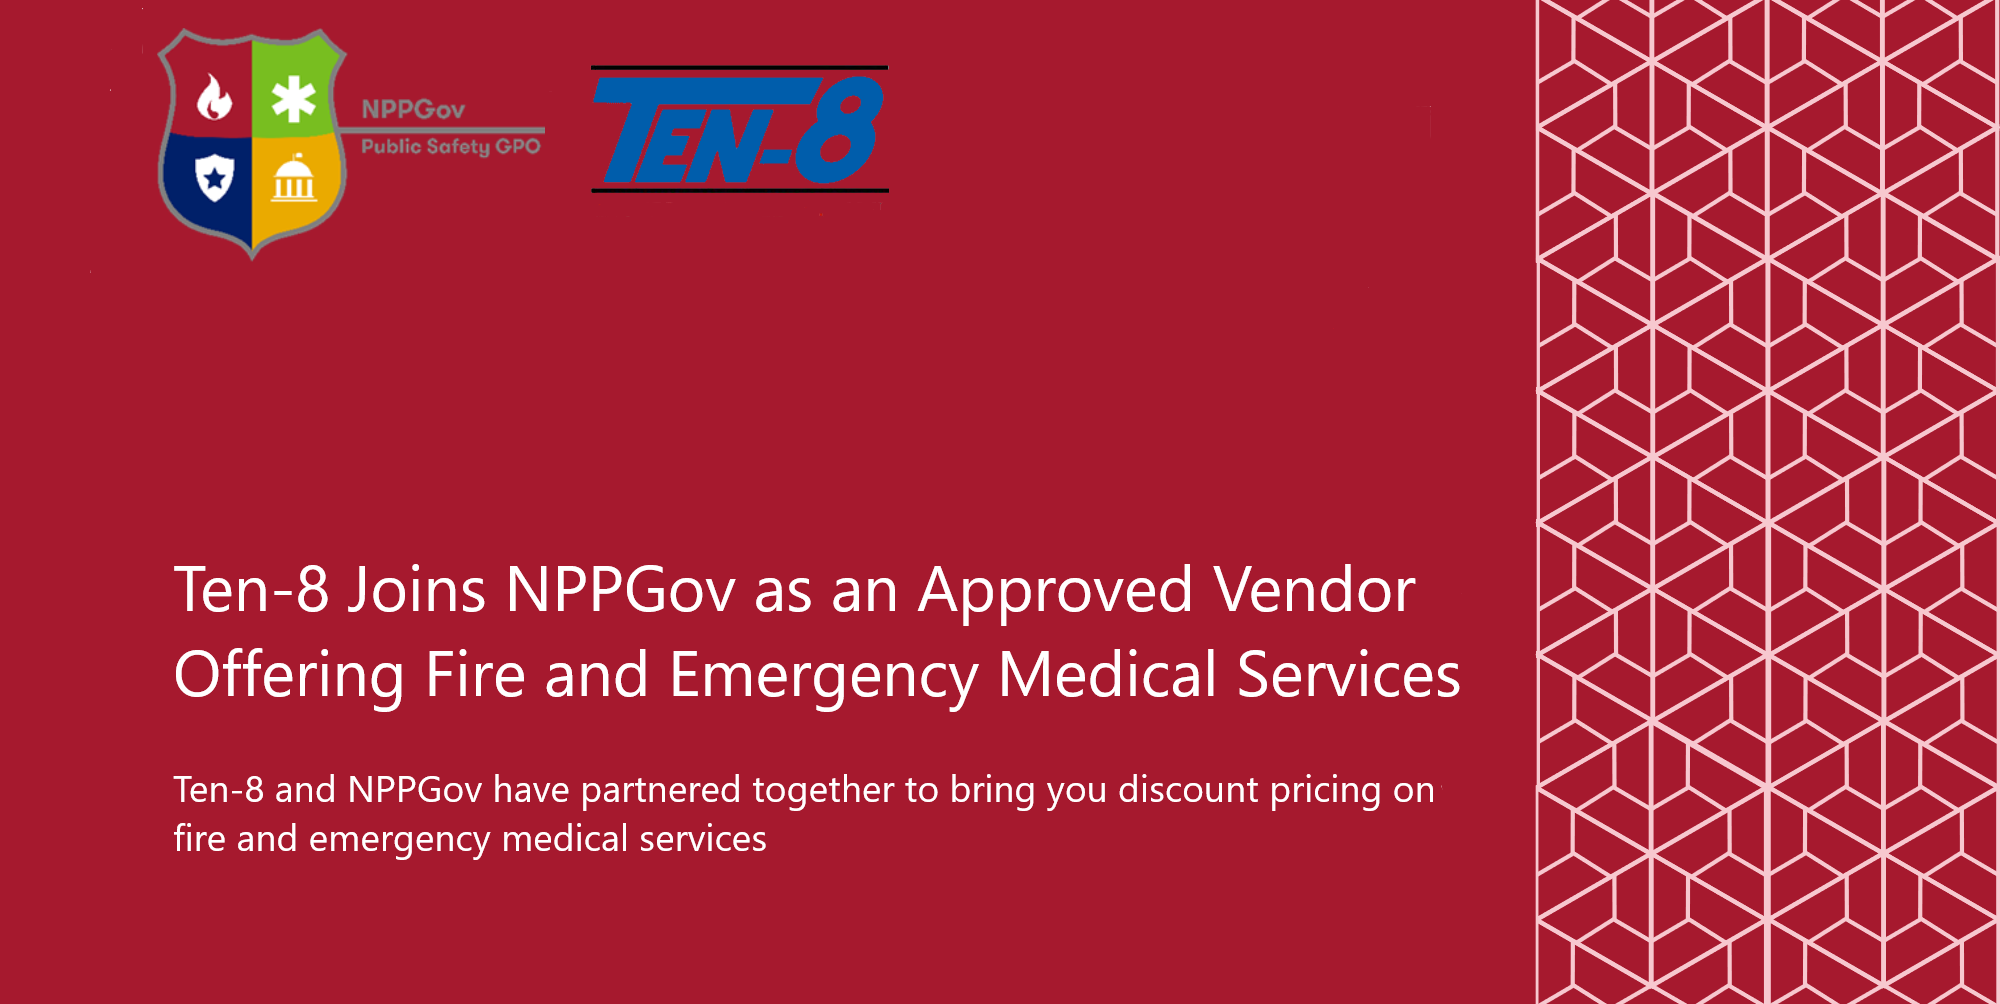 Ten-8 Joins NPPGov as an Approved Vendor